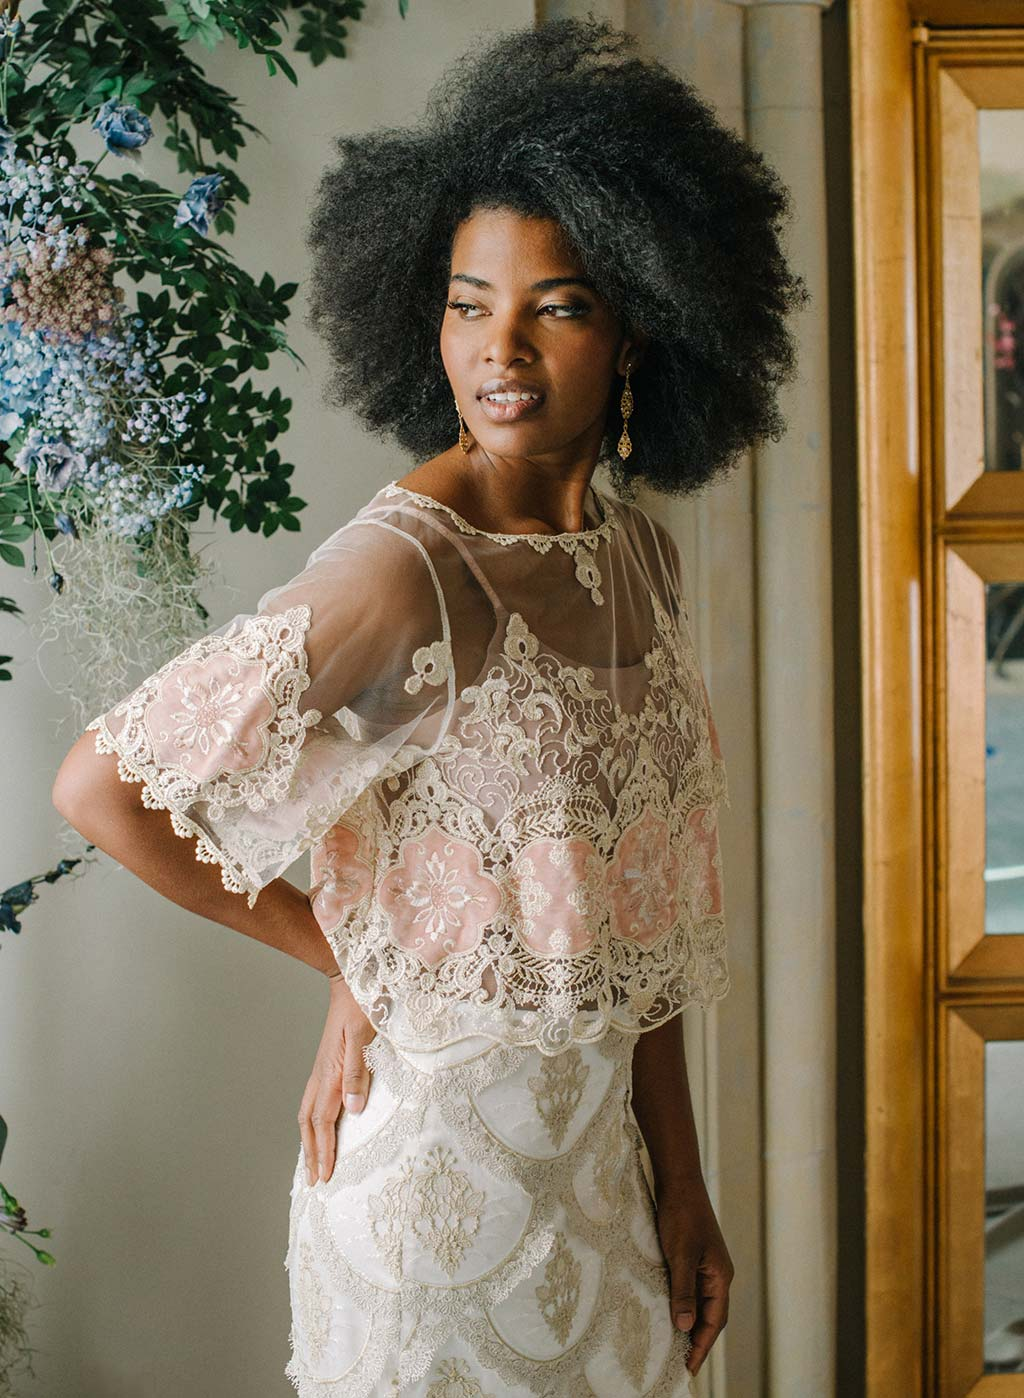 Genevieve Embroidered Top Ready to Wear Bridal Seperates